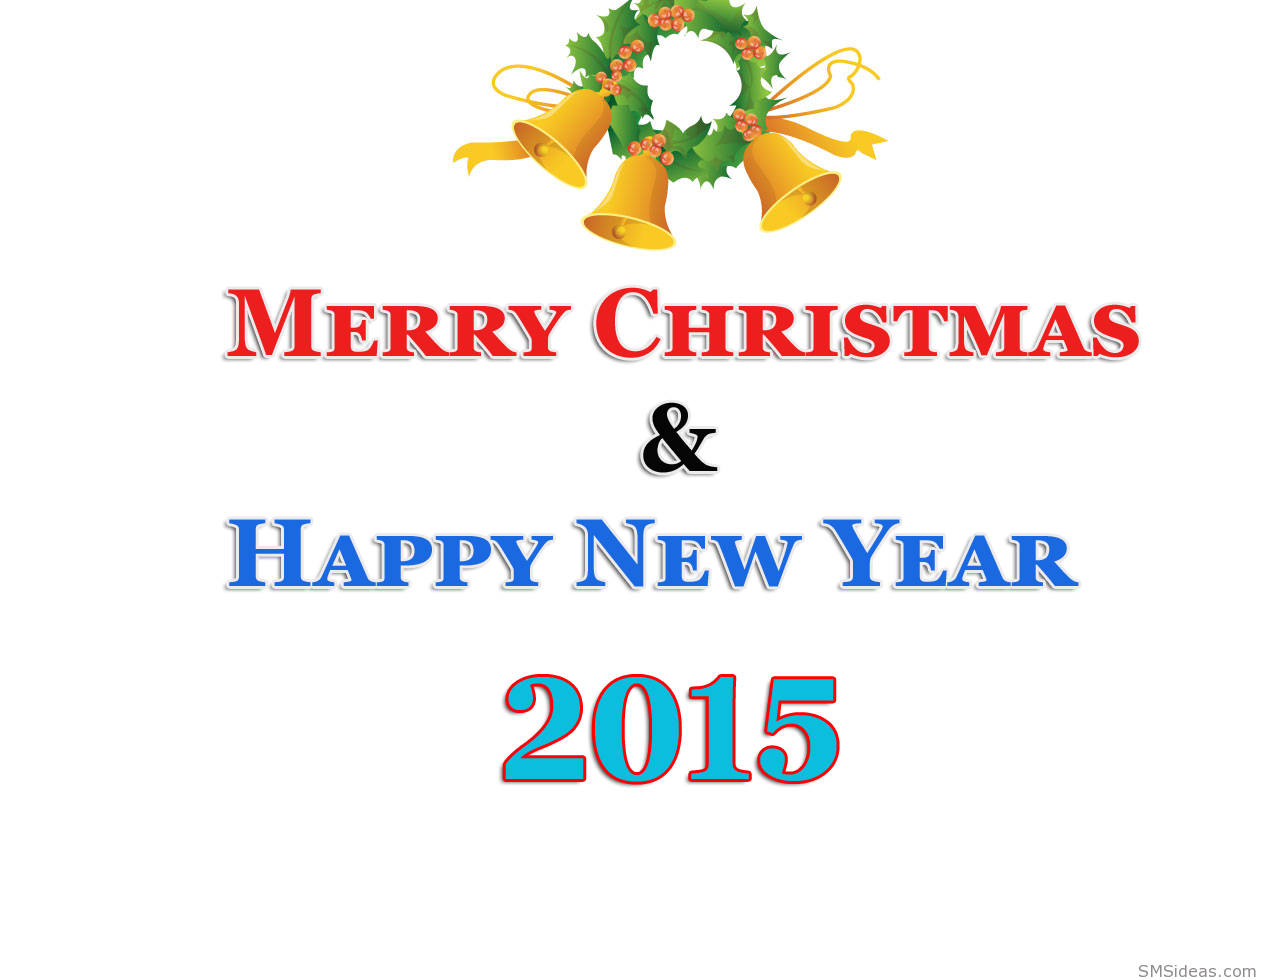 Merry Christmas saying and Happy new year 2015 | Happy New Year ...